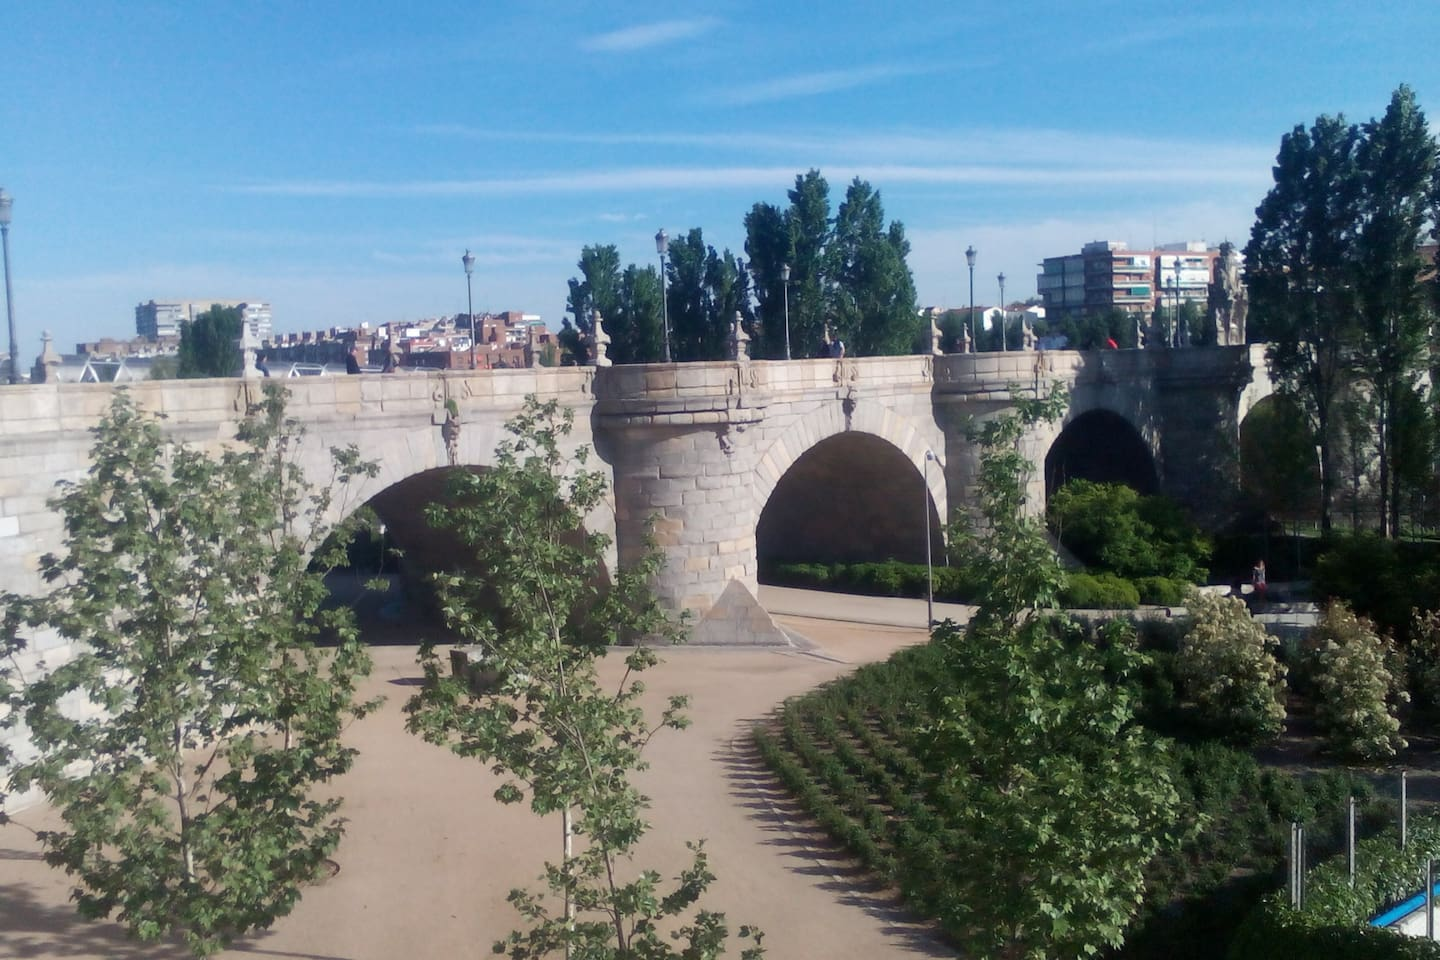 Puente de Toledo, just few metres from here